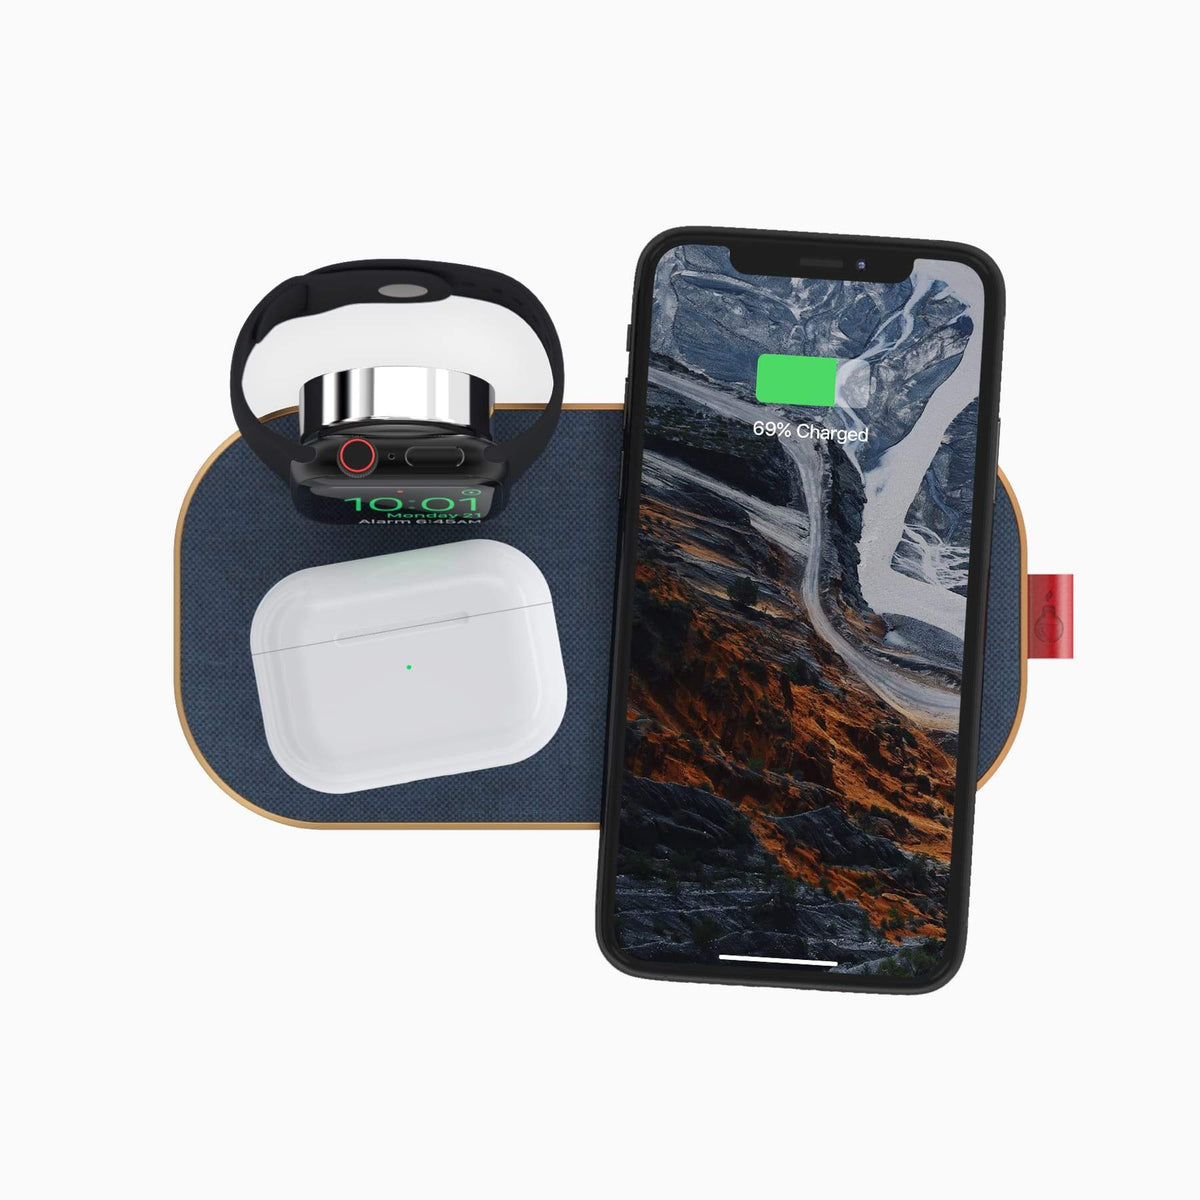 5-in-1 Wireless Charging Station